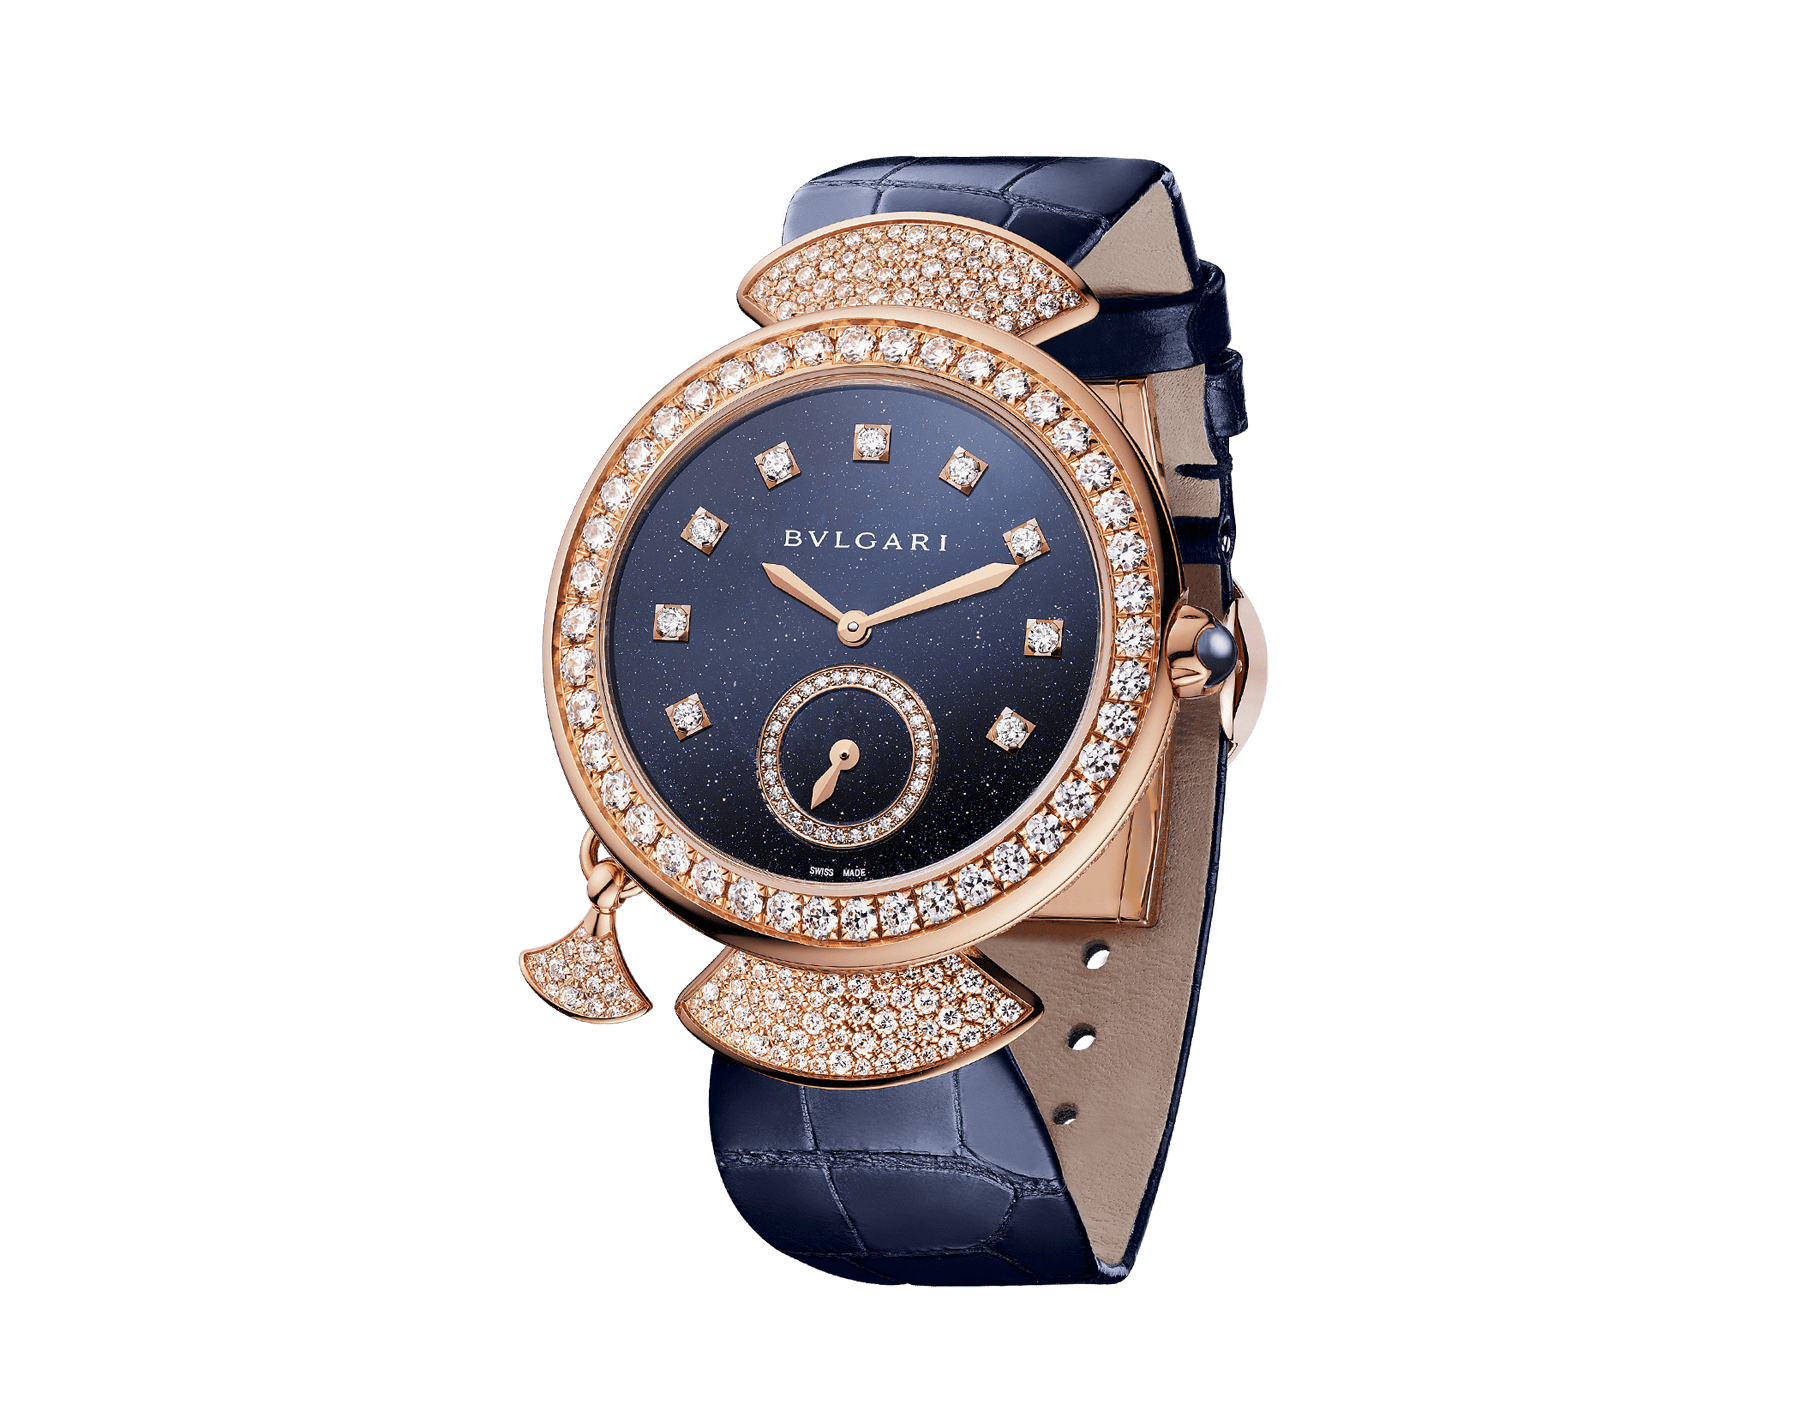 DIVAS' DREAM watch with extra-thin mechanical manufacture movement with minute repeater, two hammers, manual winding, 18 kt rose gold case and links fully set with snow-pavé diamonds, aventurine dial, diamond indexes, off-centred small seconds counter set with diamonds, transparent case back and blue alligator bracelet. Limited edition of ten pieces 103233 image 1